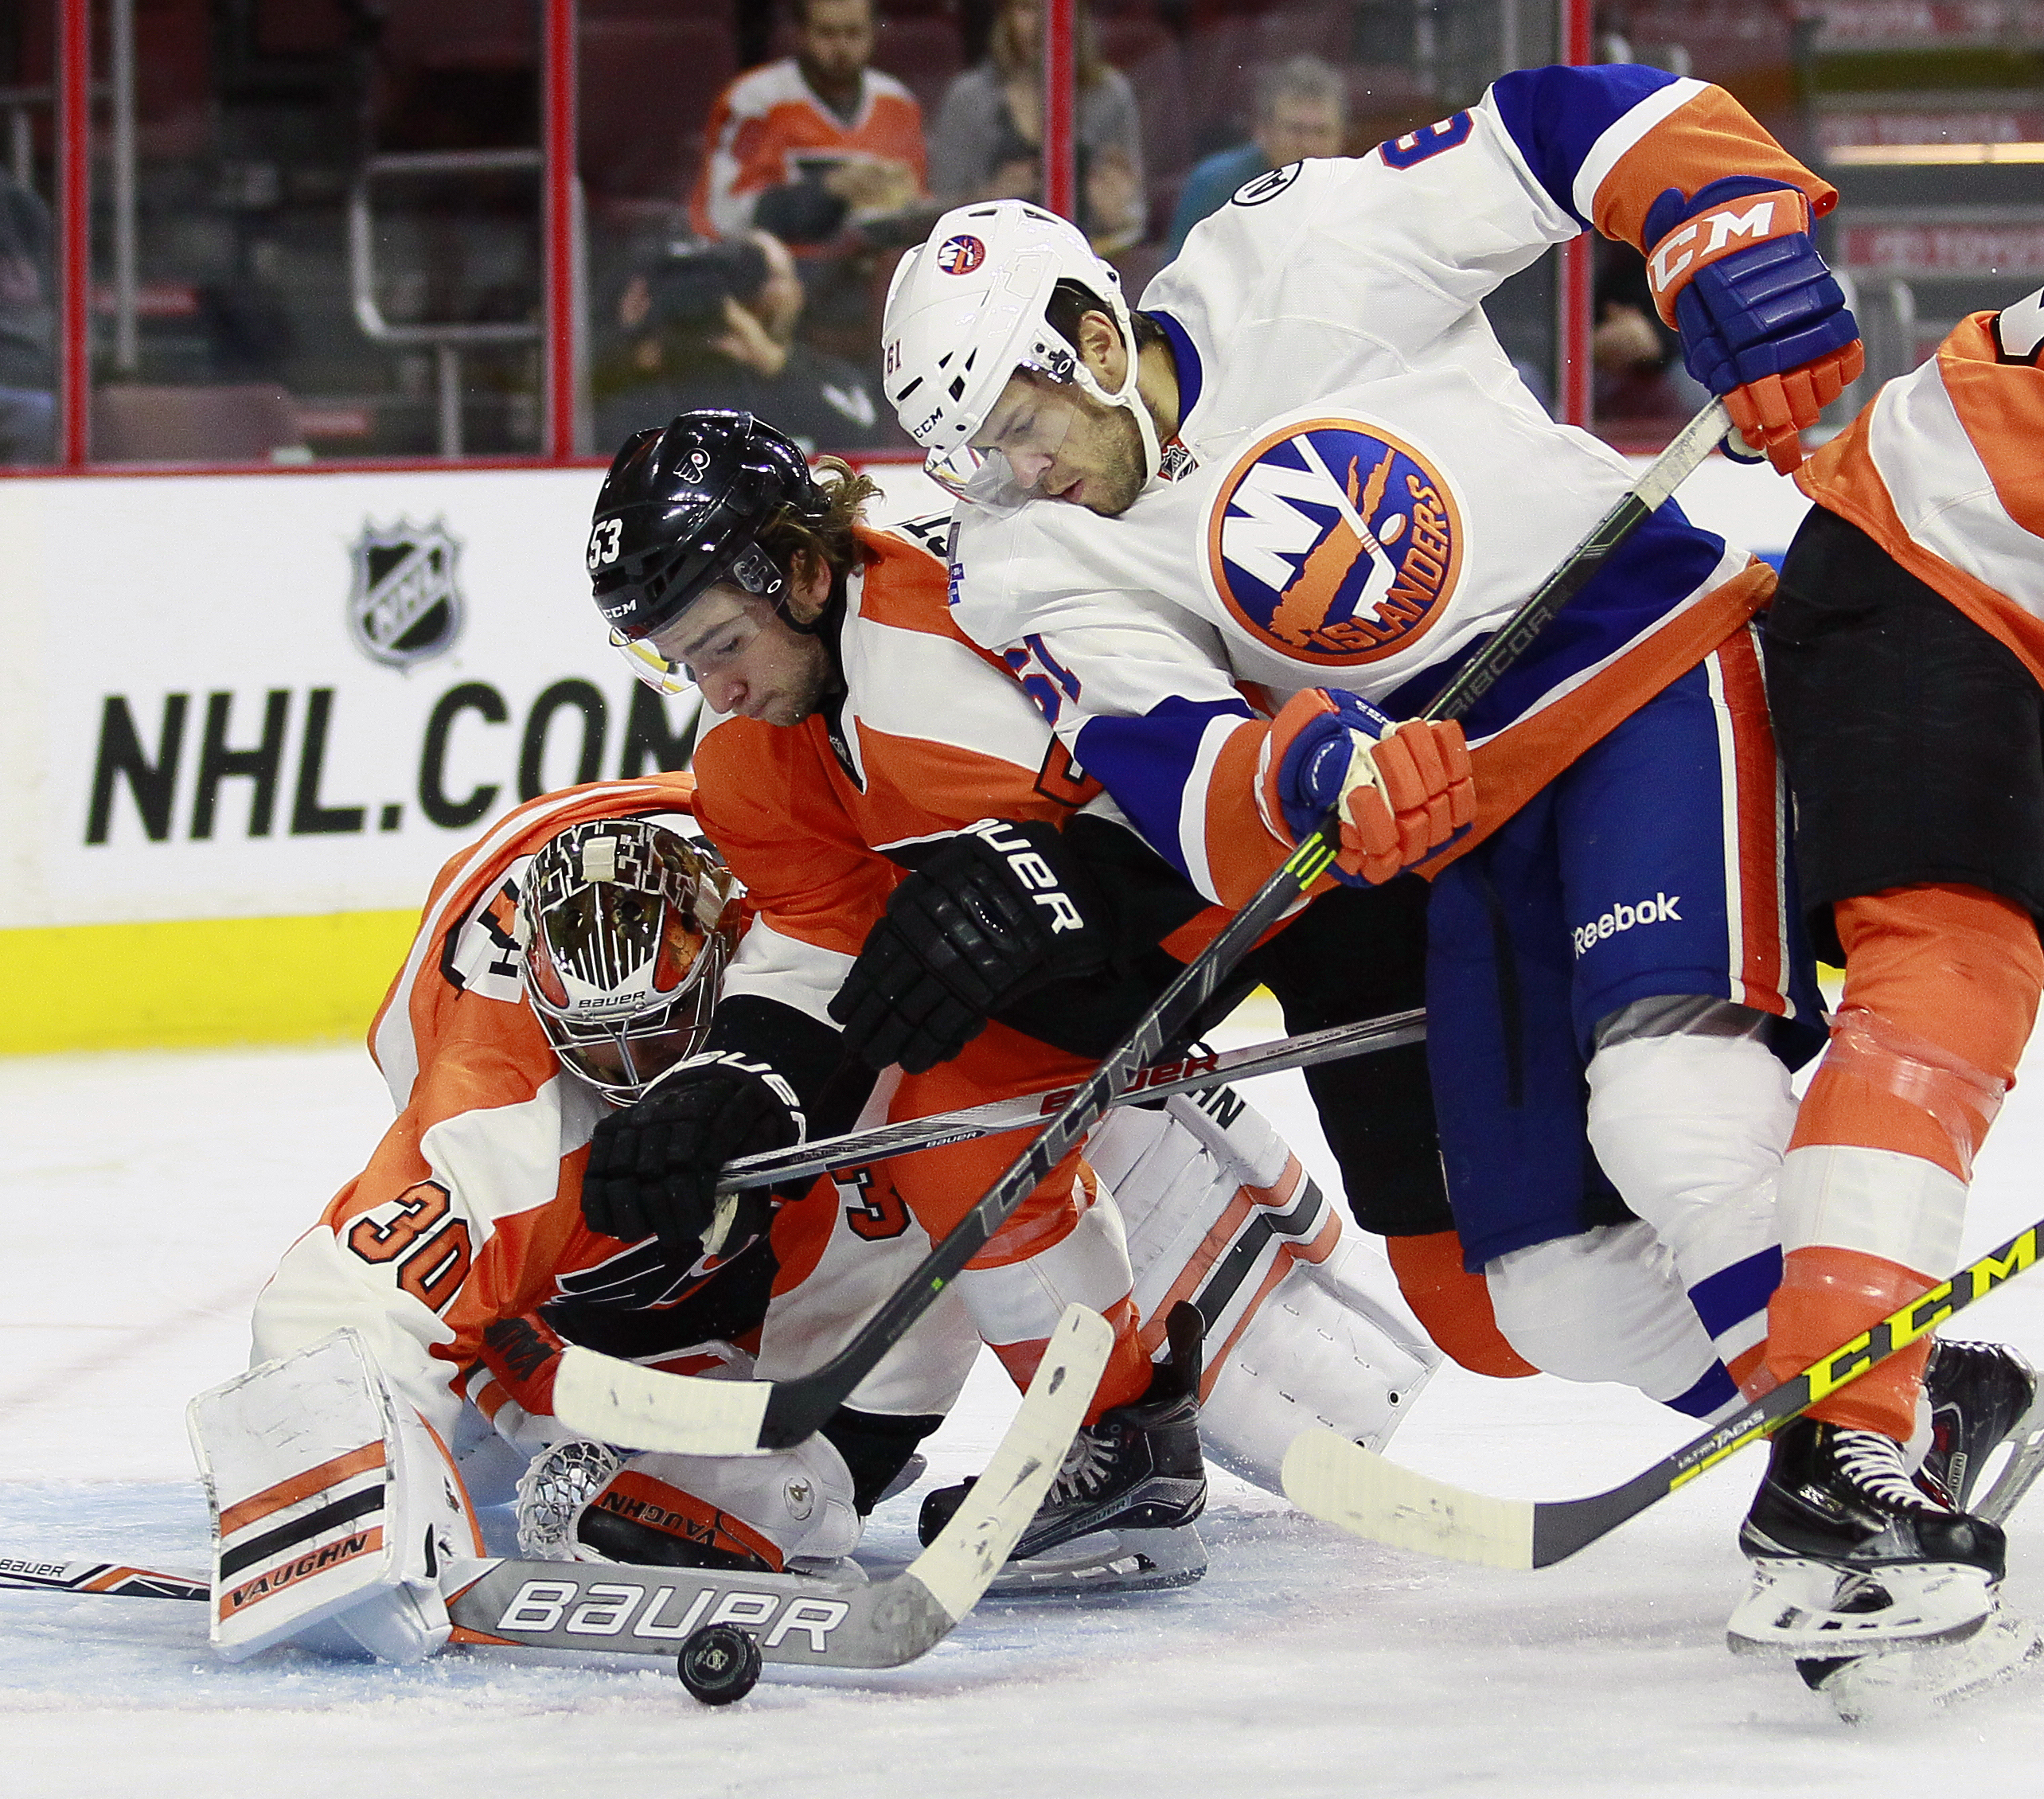 Philadelphia Flyers goalie Michal Neuvirth, left, Flyers' Shayne Gotisbehere, center and New York Islanders' Tyler Barnes dig for the puck during the first period of a preseason NHL hockey game Friday, Sept. 25, 2015, in Philadelphia. (AP Photo/Tom Mihale